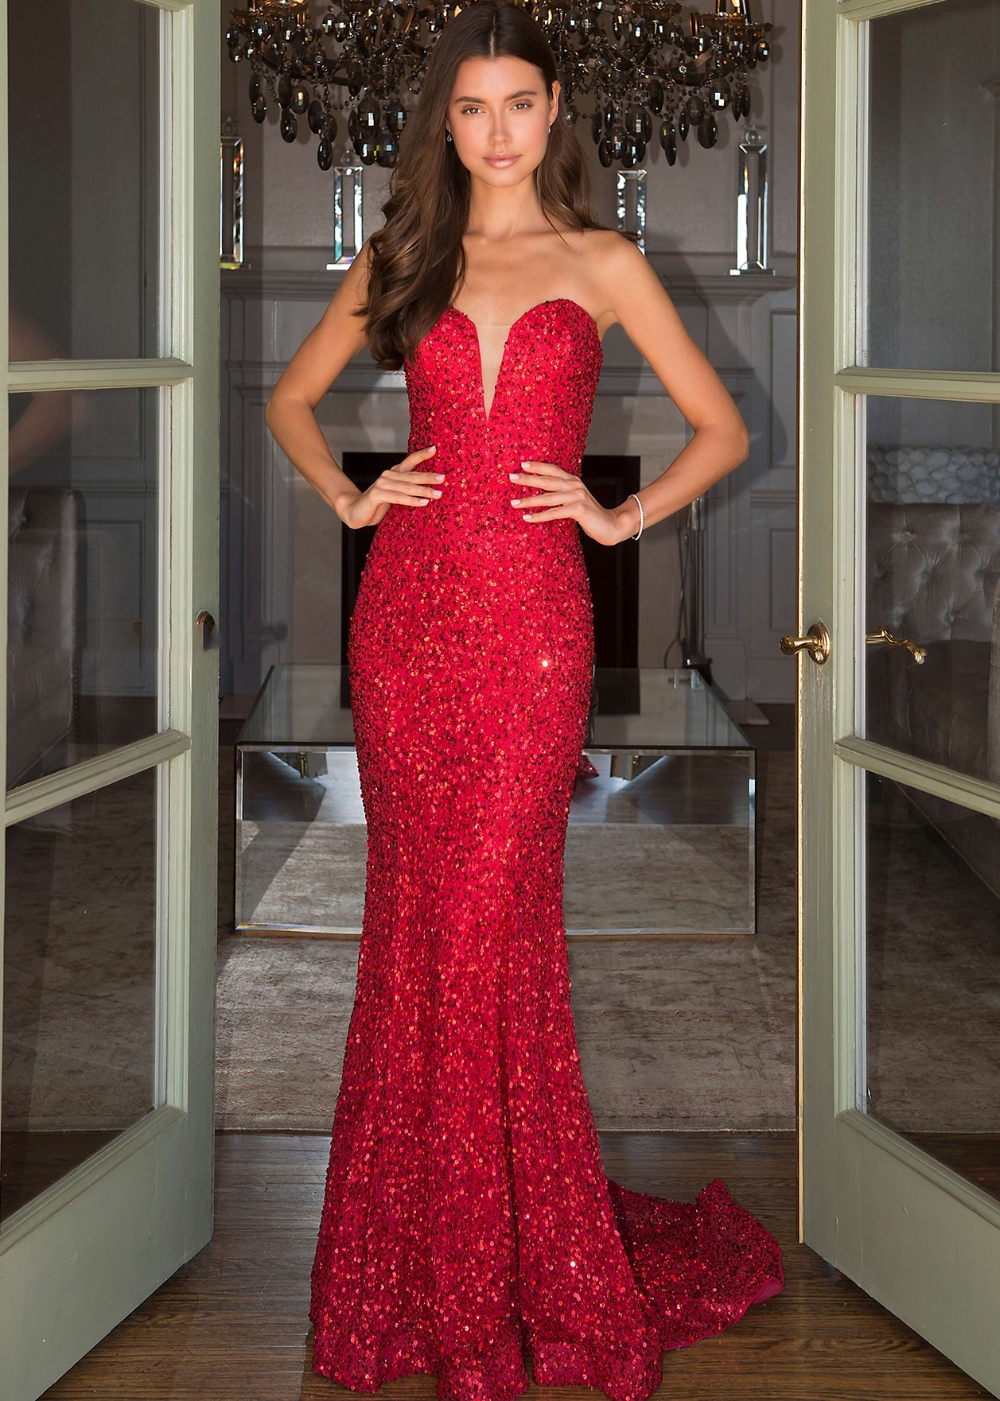 Scala 60093 Prom Dress Red Sequin Strapless Fitted Mermaid Gown Red Mermaid Prom Dress Red Mermaid Dress Dresses [ 1401 x 1000 Pixel ]